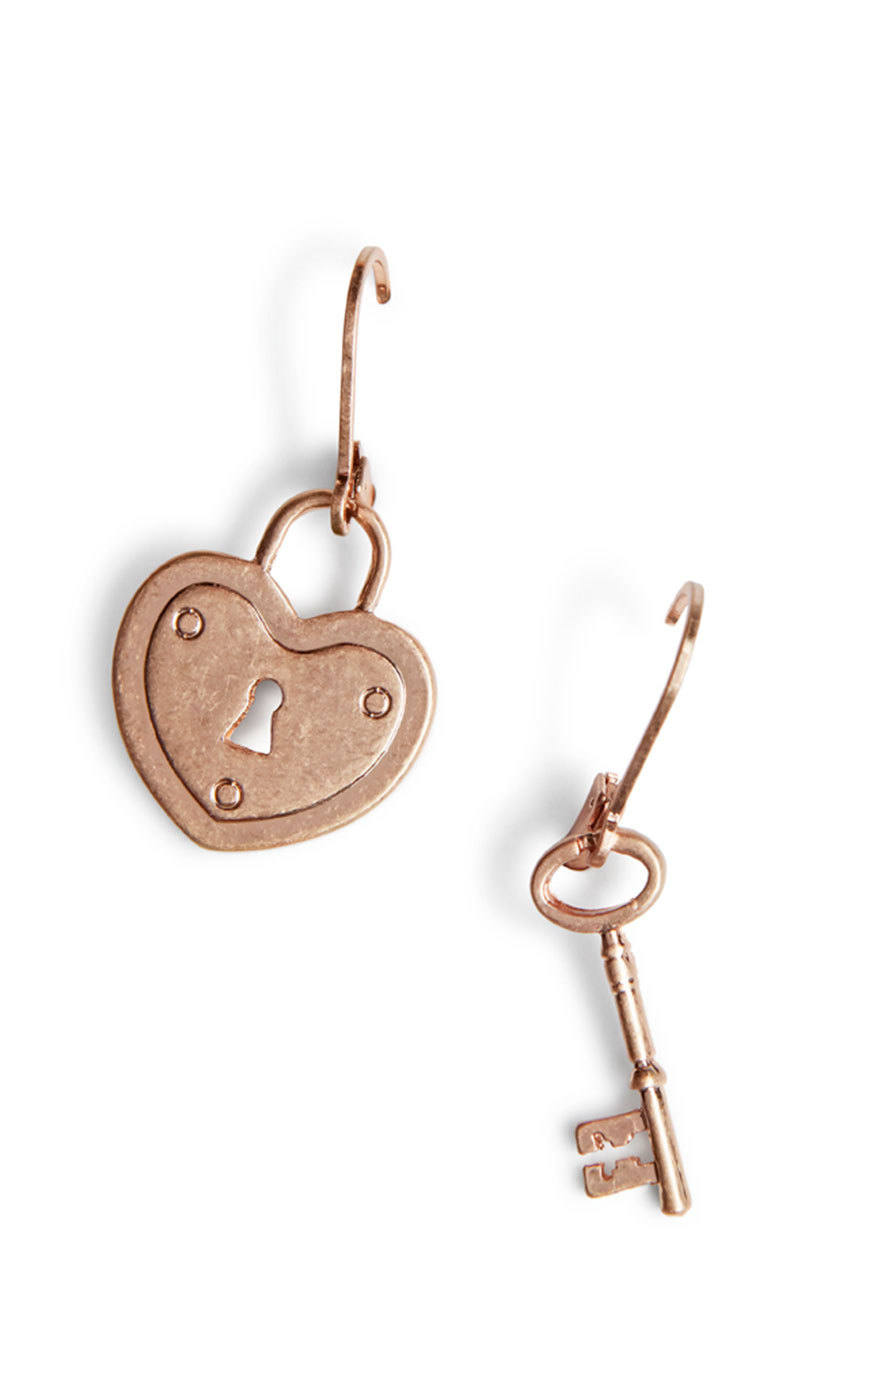 cabi's Lock and Key Earrings